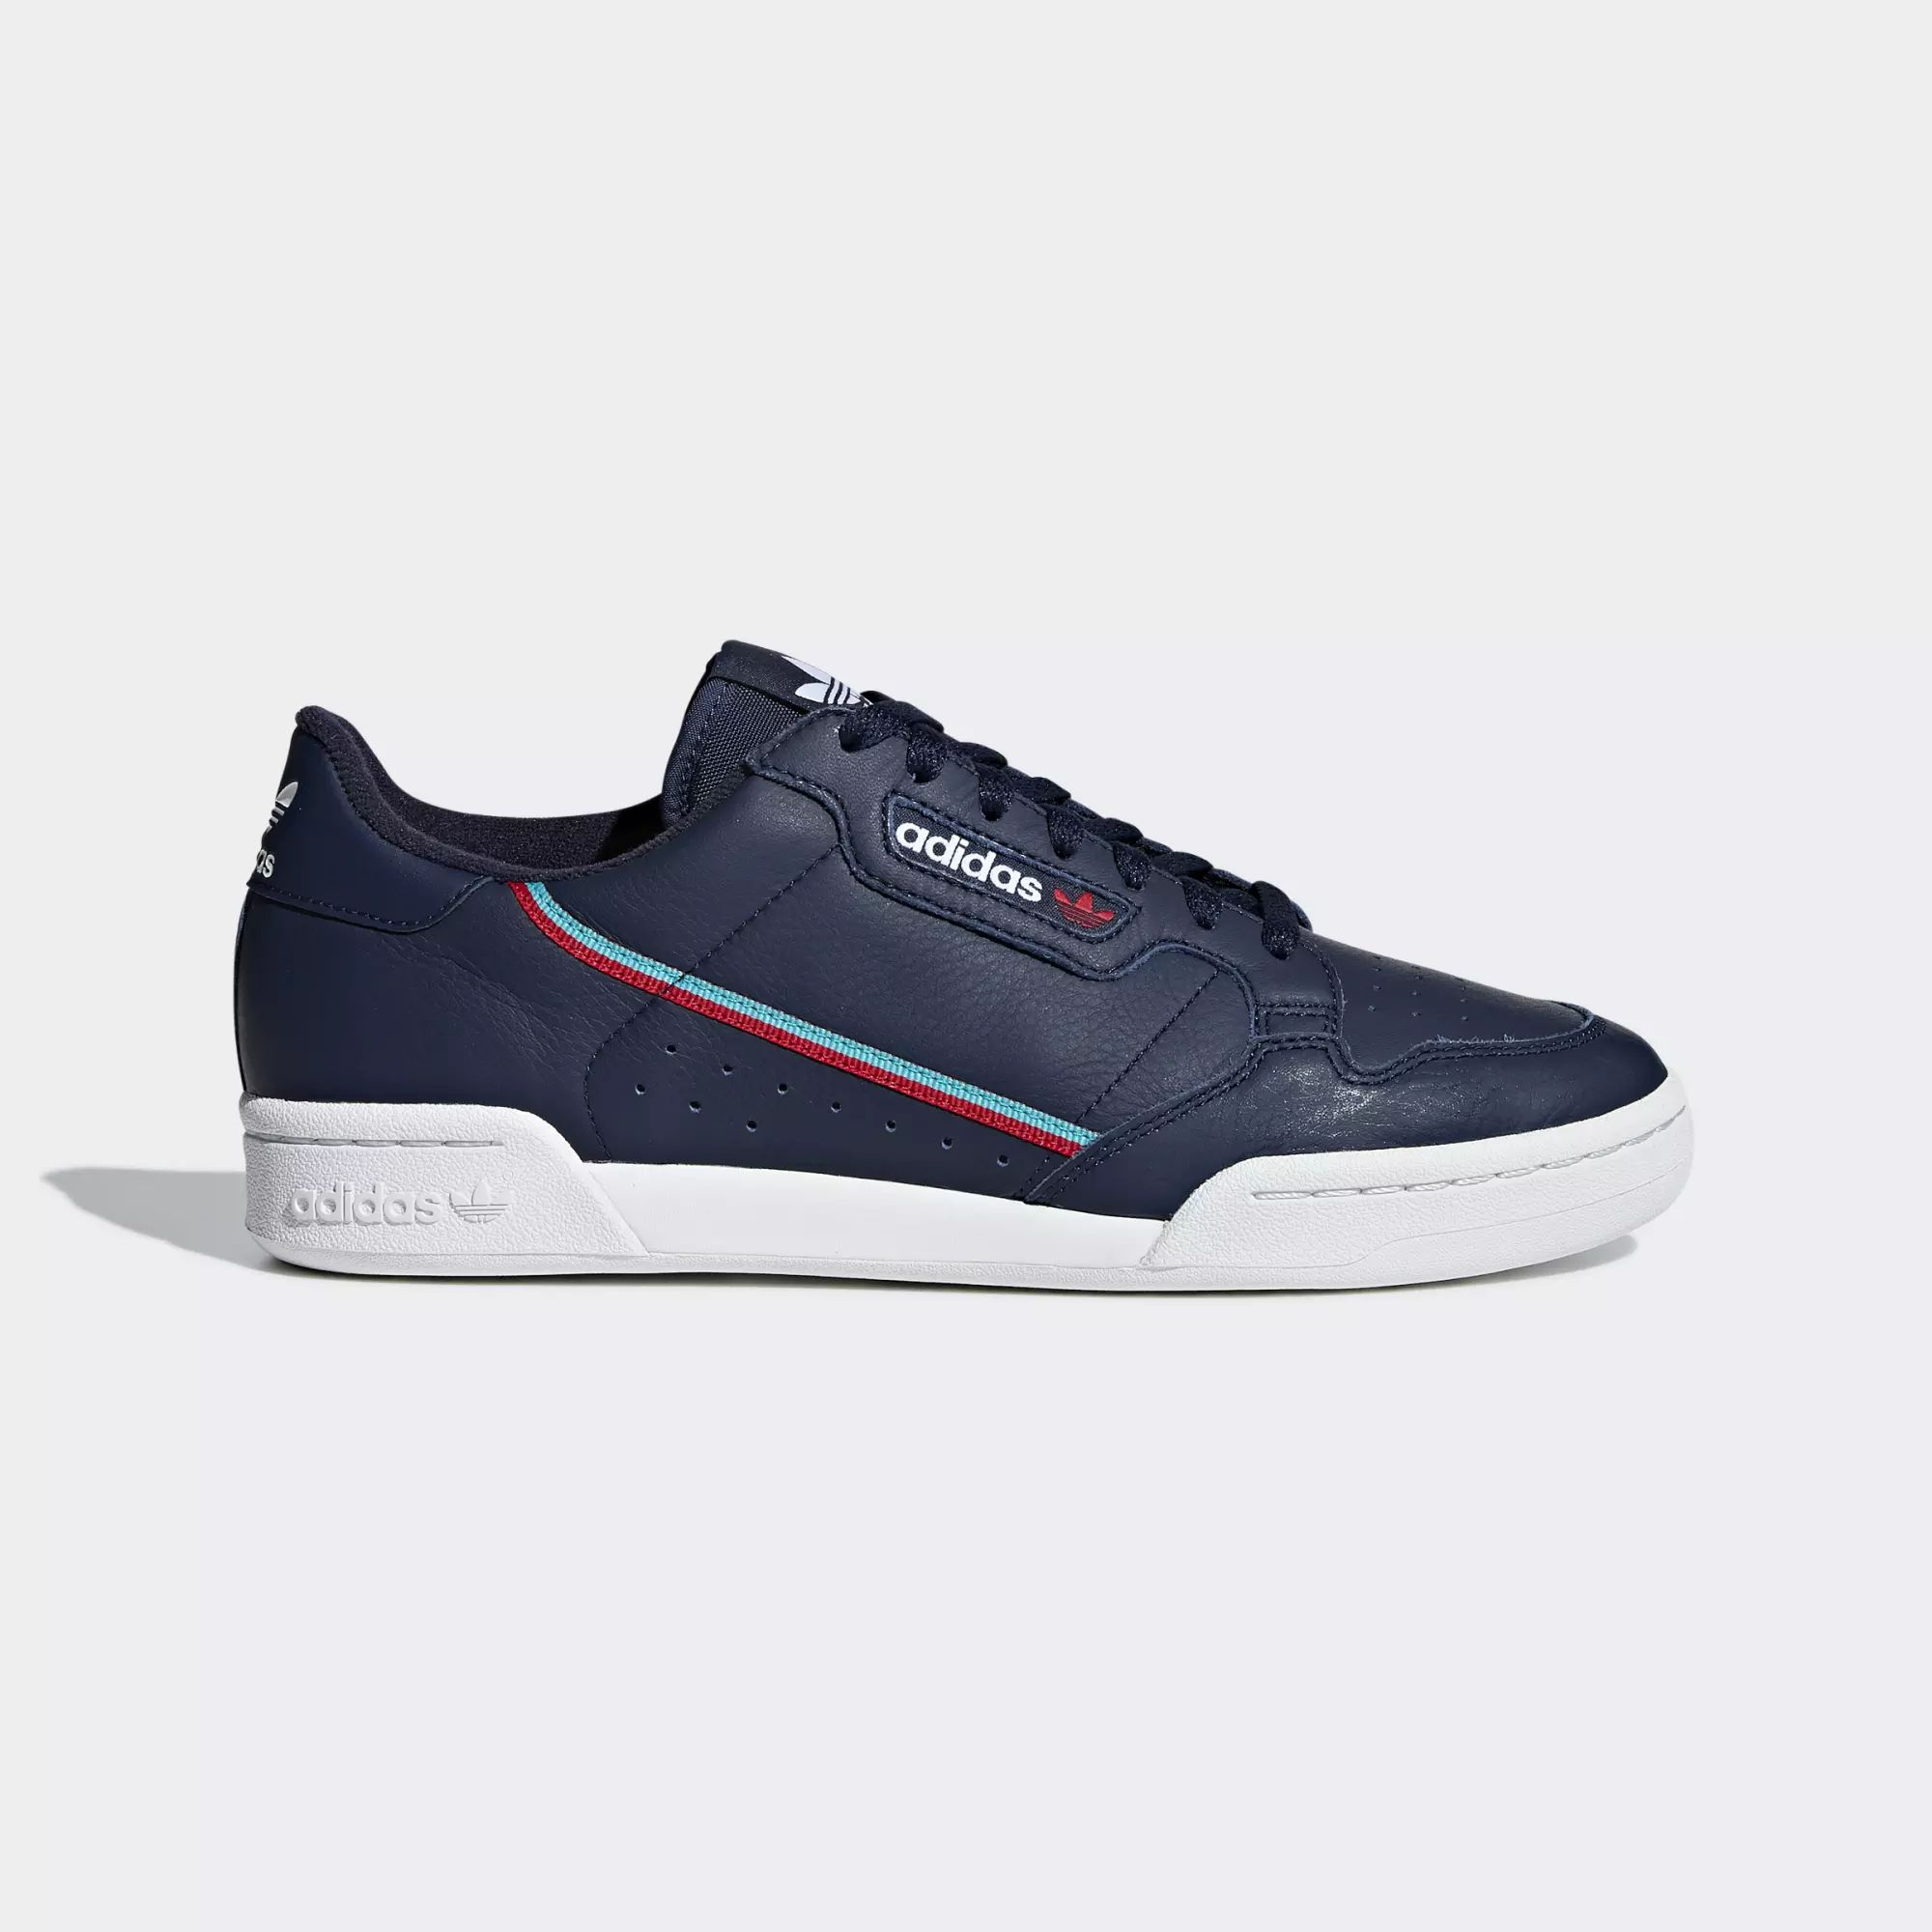 Adidas Continental 80 Shoes - Collegiate Navy / Scarlet / Hi-Res Aqua